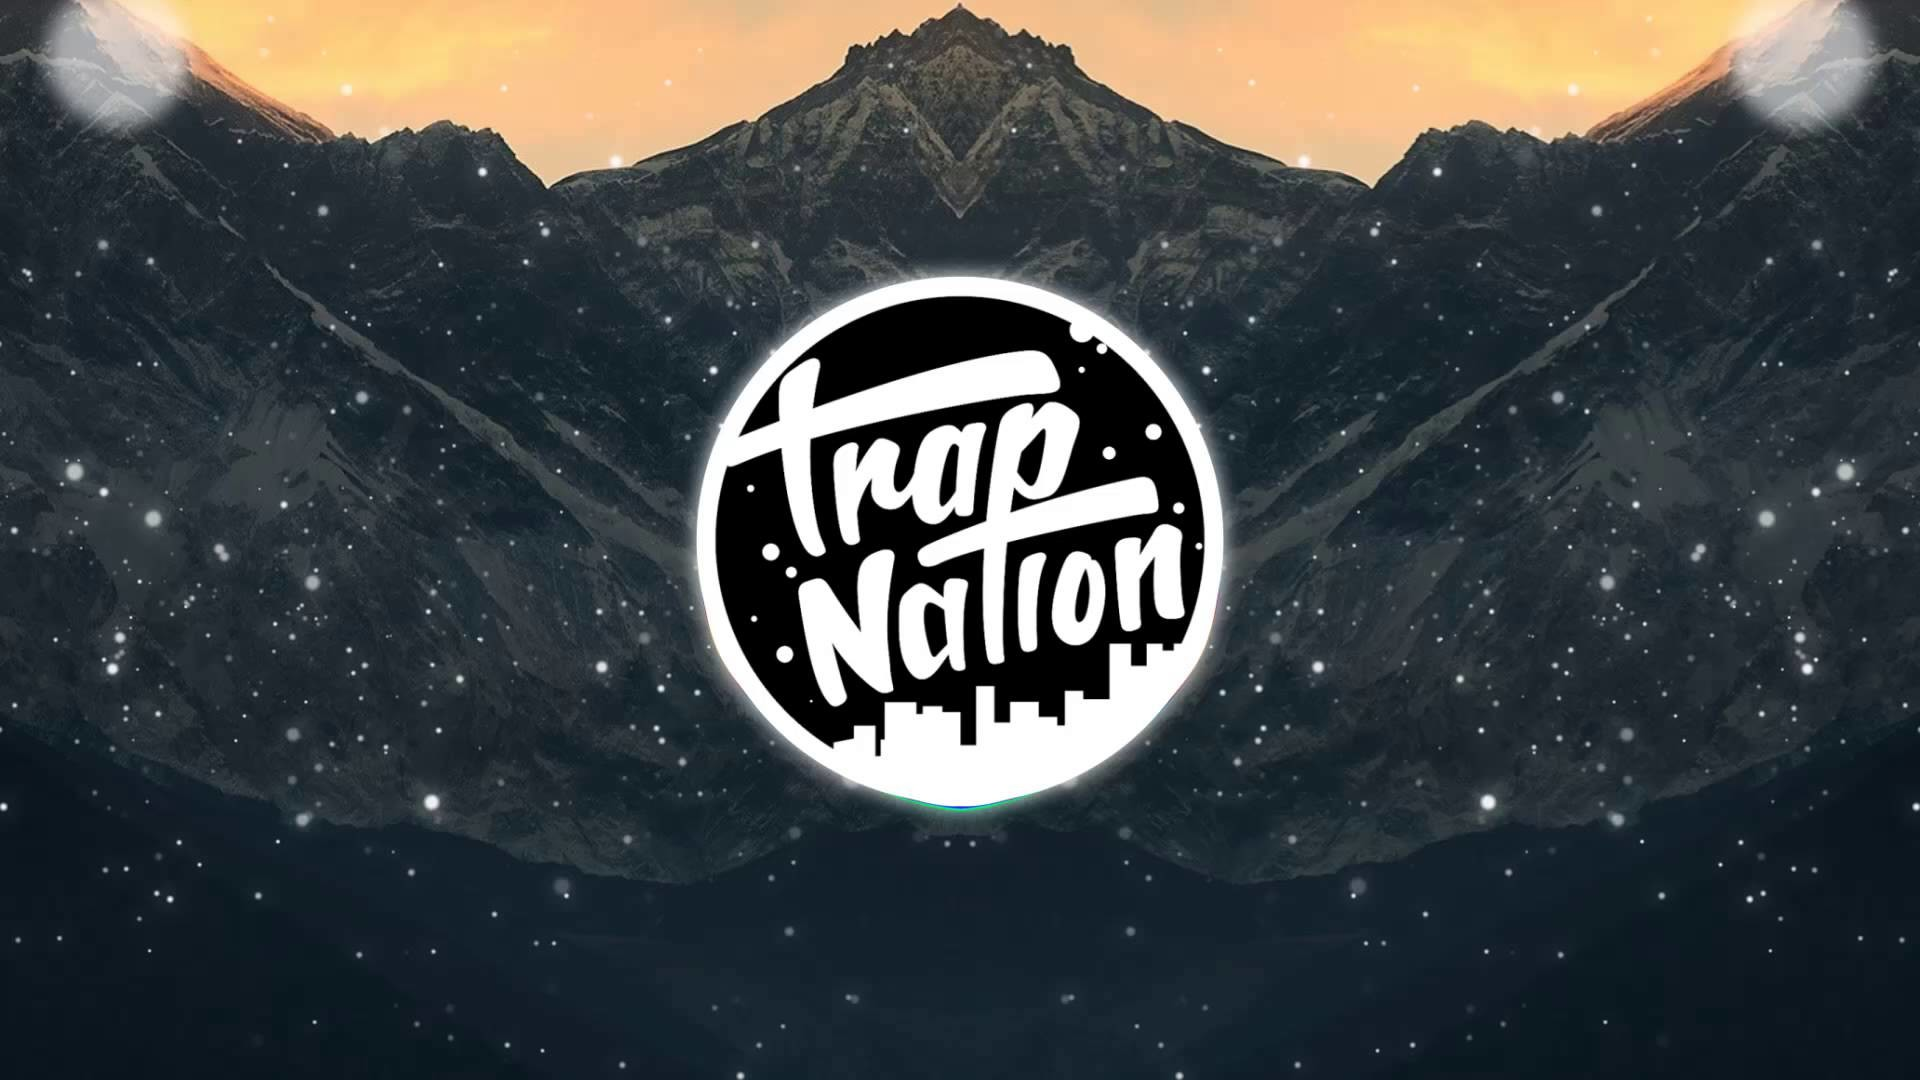 1920x1080 Trap Nation Hd Wallpapers Desktop And Cray Up In Smoke You